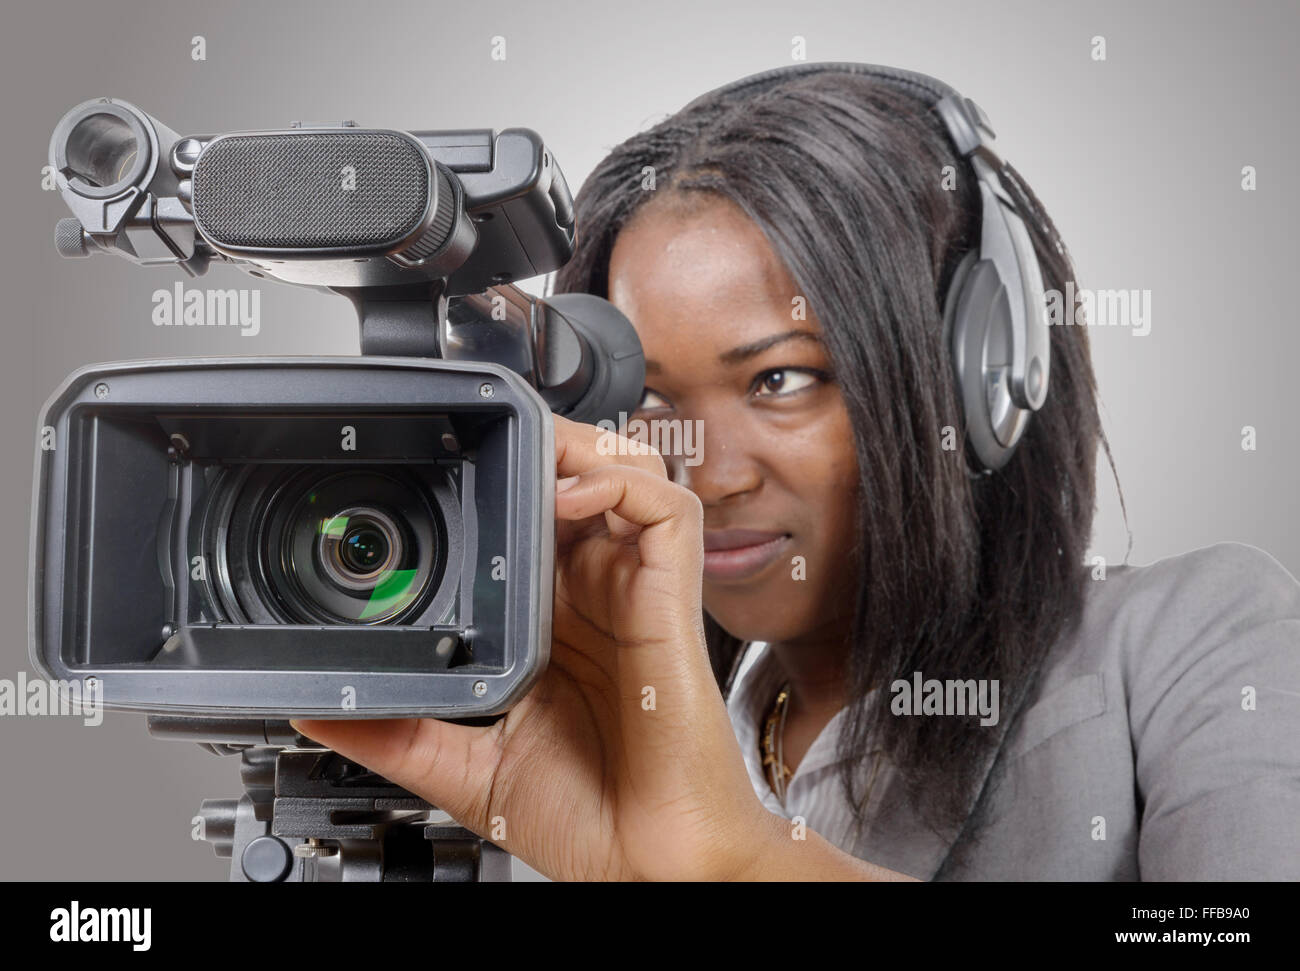 a young African American women with professional video camera and headphone 6357410787